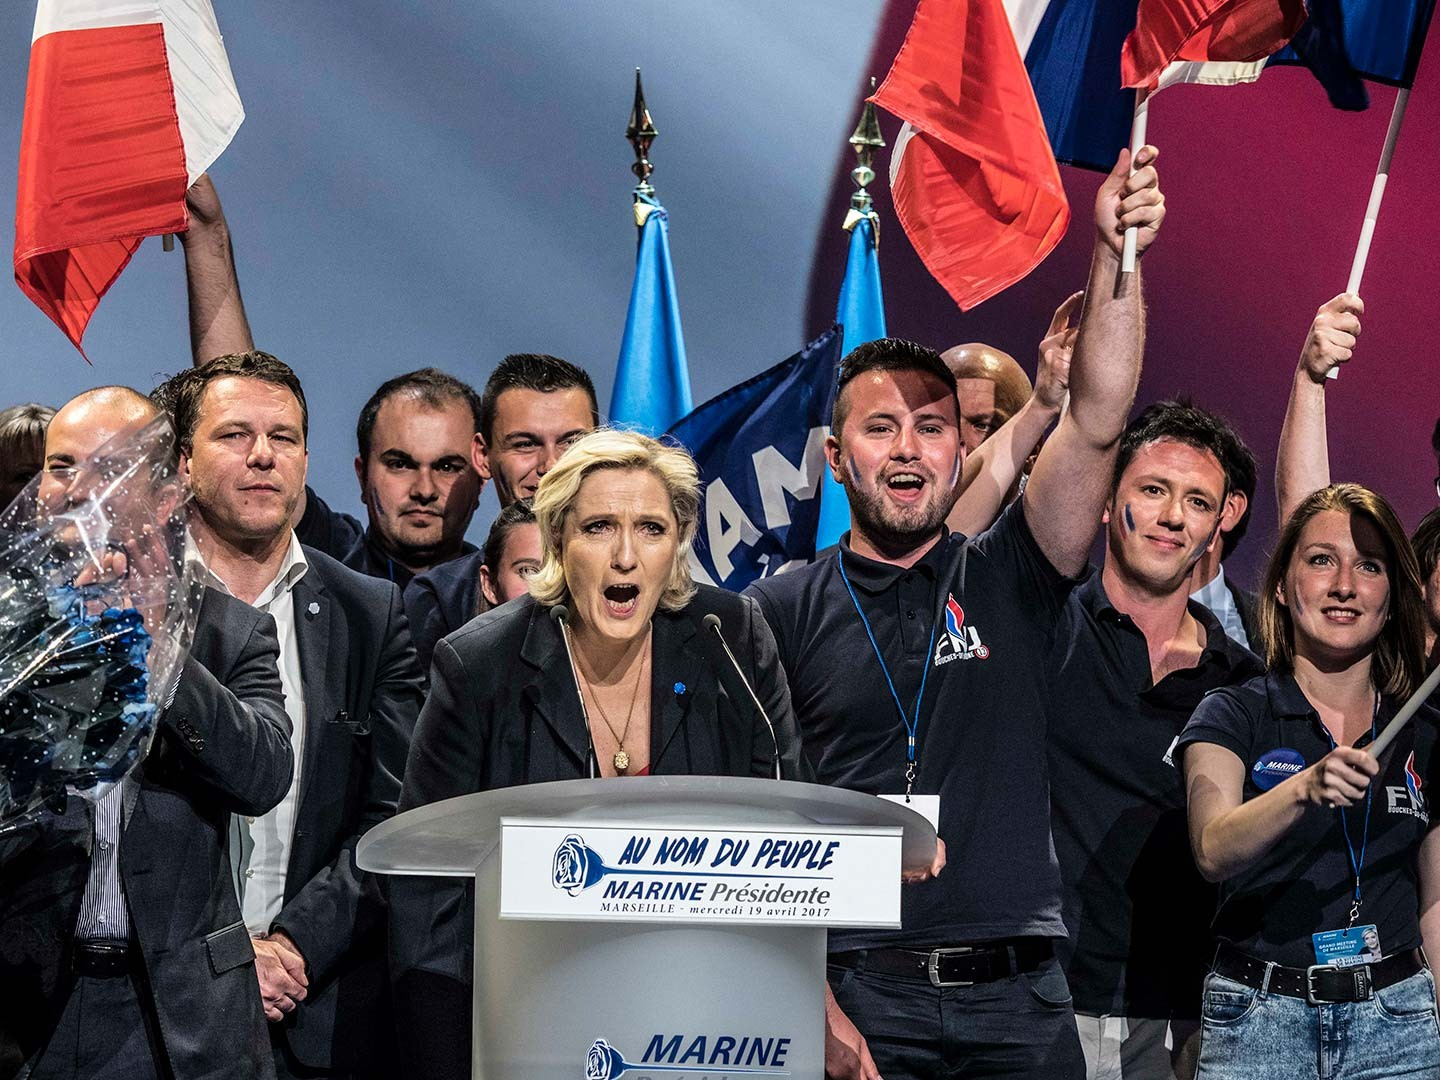 Meeting de Marine Le Pen à Marseille